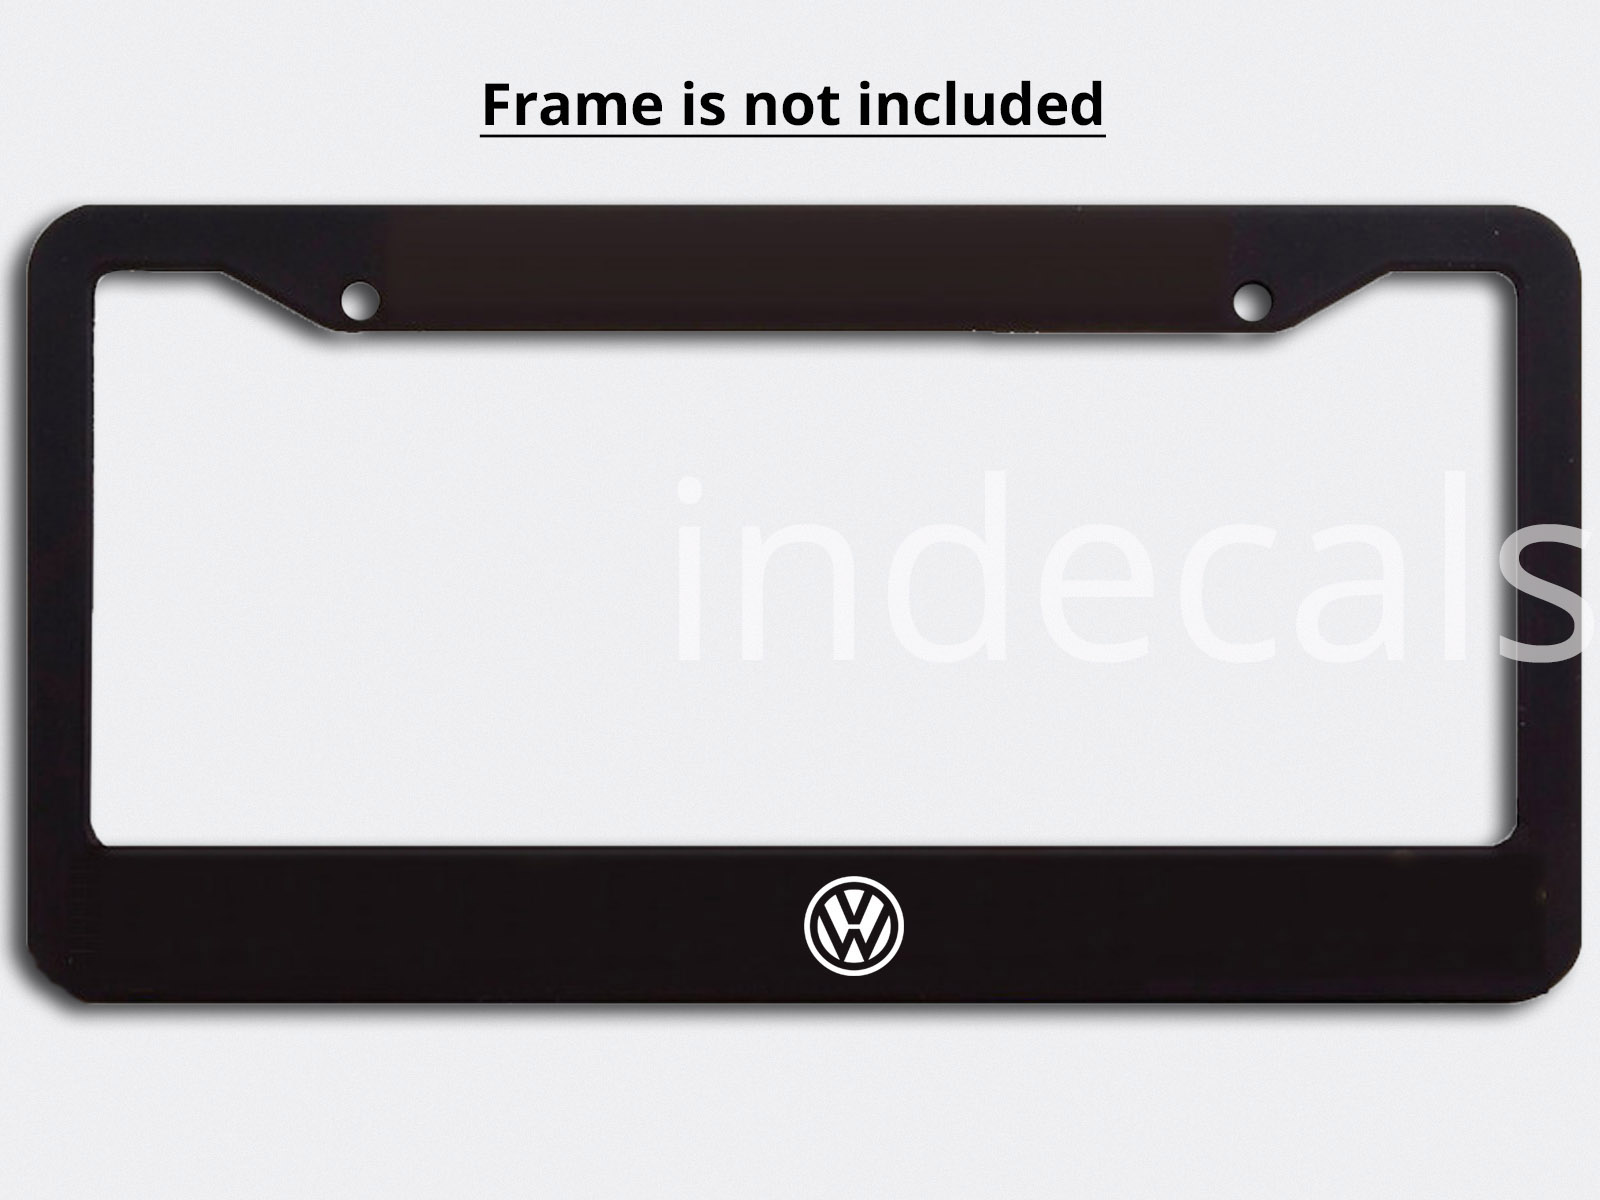 3 x Volkswagen Stickers for License Plate Frame - White